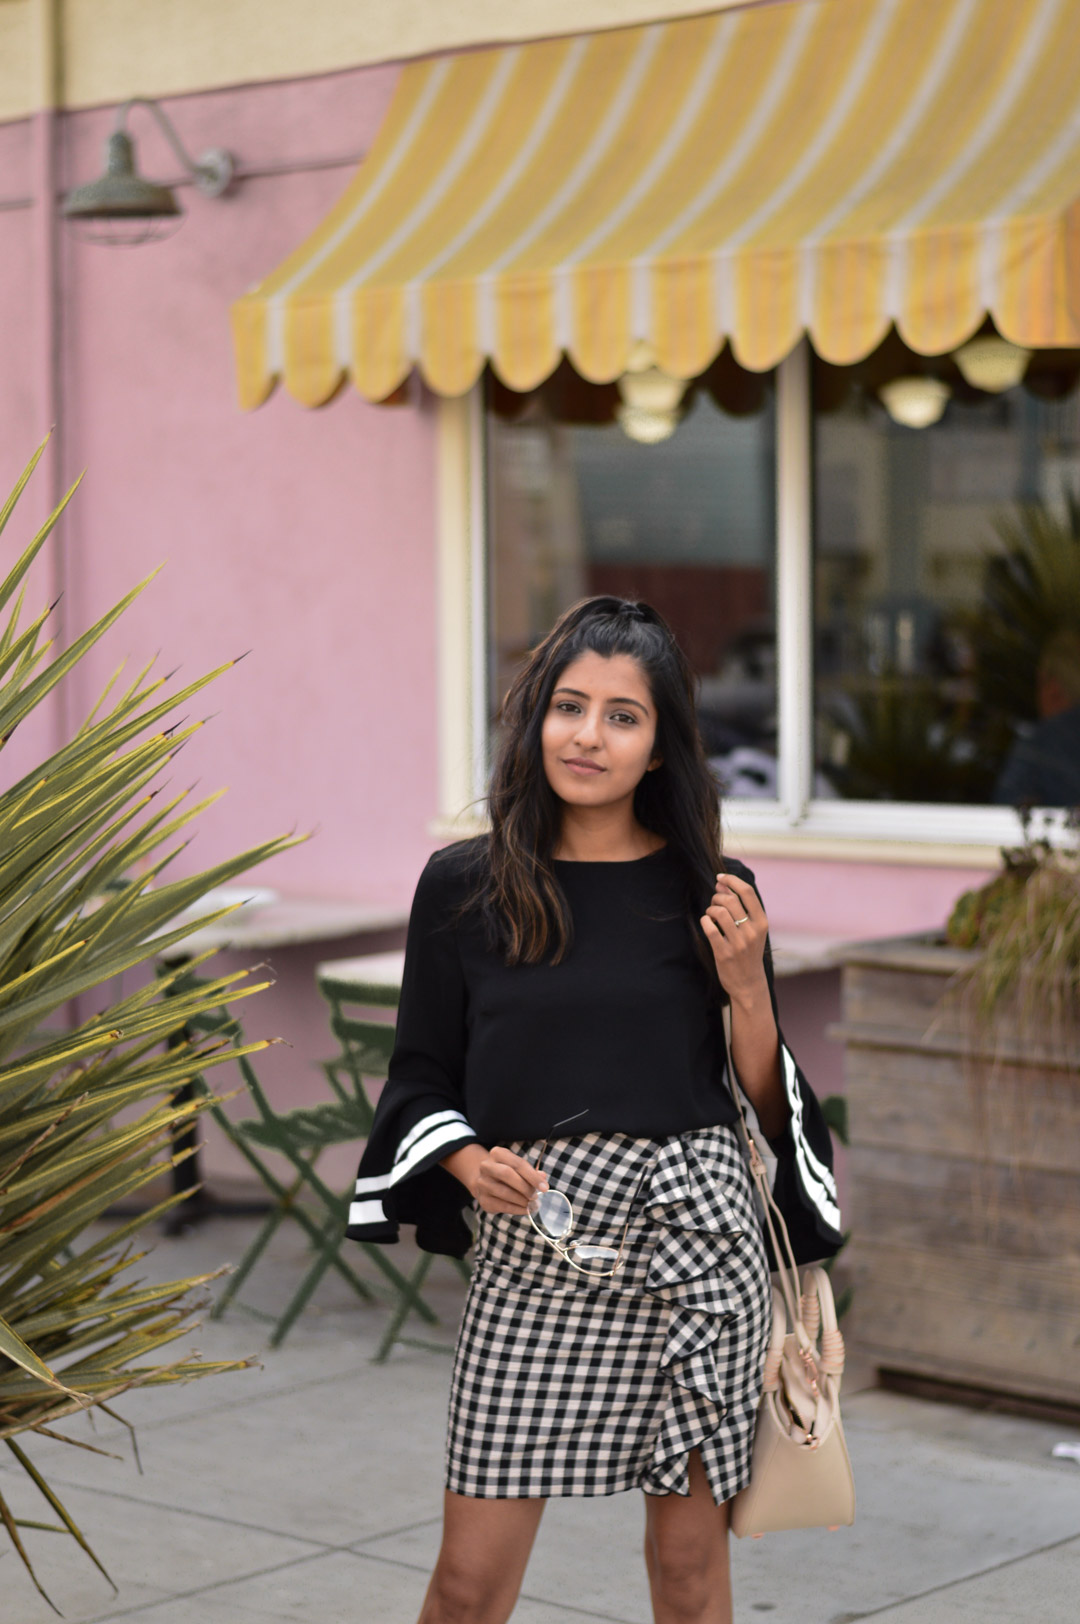 bell-sleeves-gingham-ruffles-transition-style-blogger-outfit 5